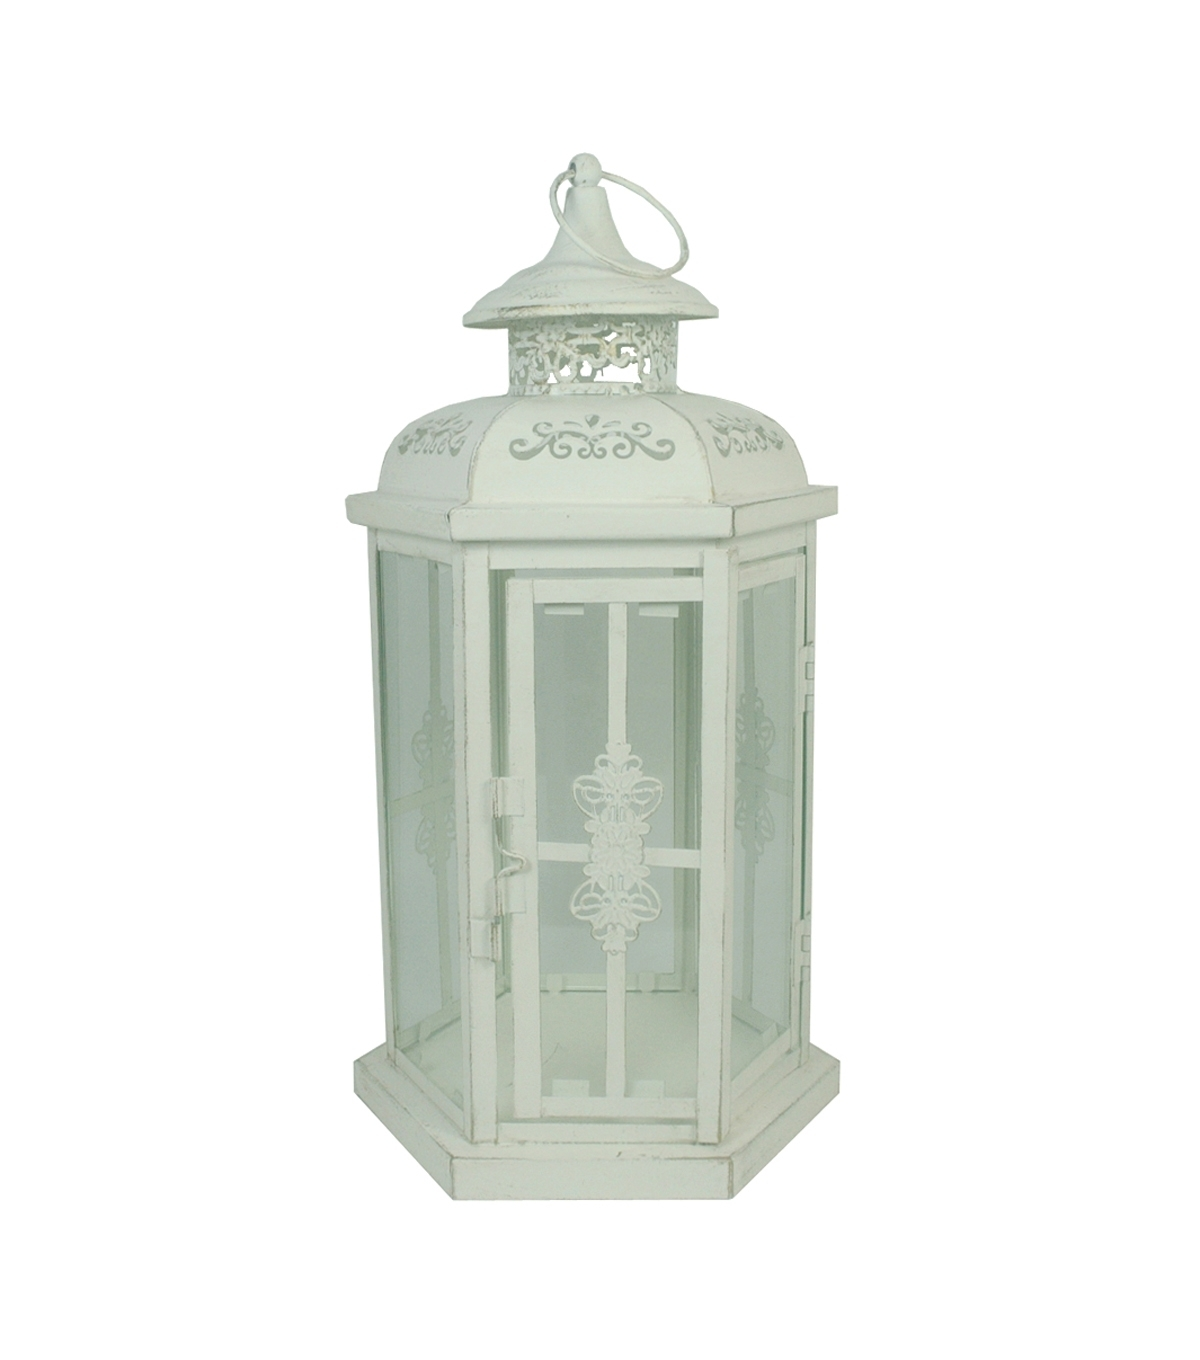 Popular Joanns Outdoor Lanterns Intended For Hudson 43 Candle & Light Distressed Metal Lantern (View 16 of 20)